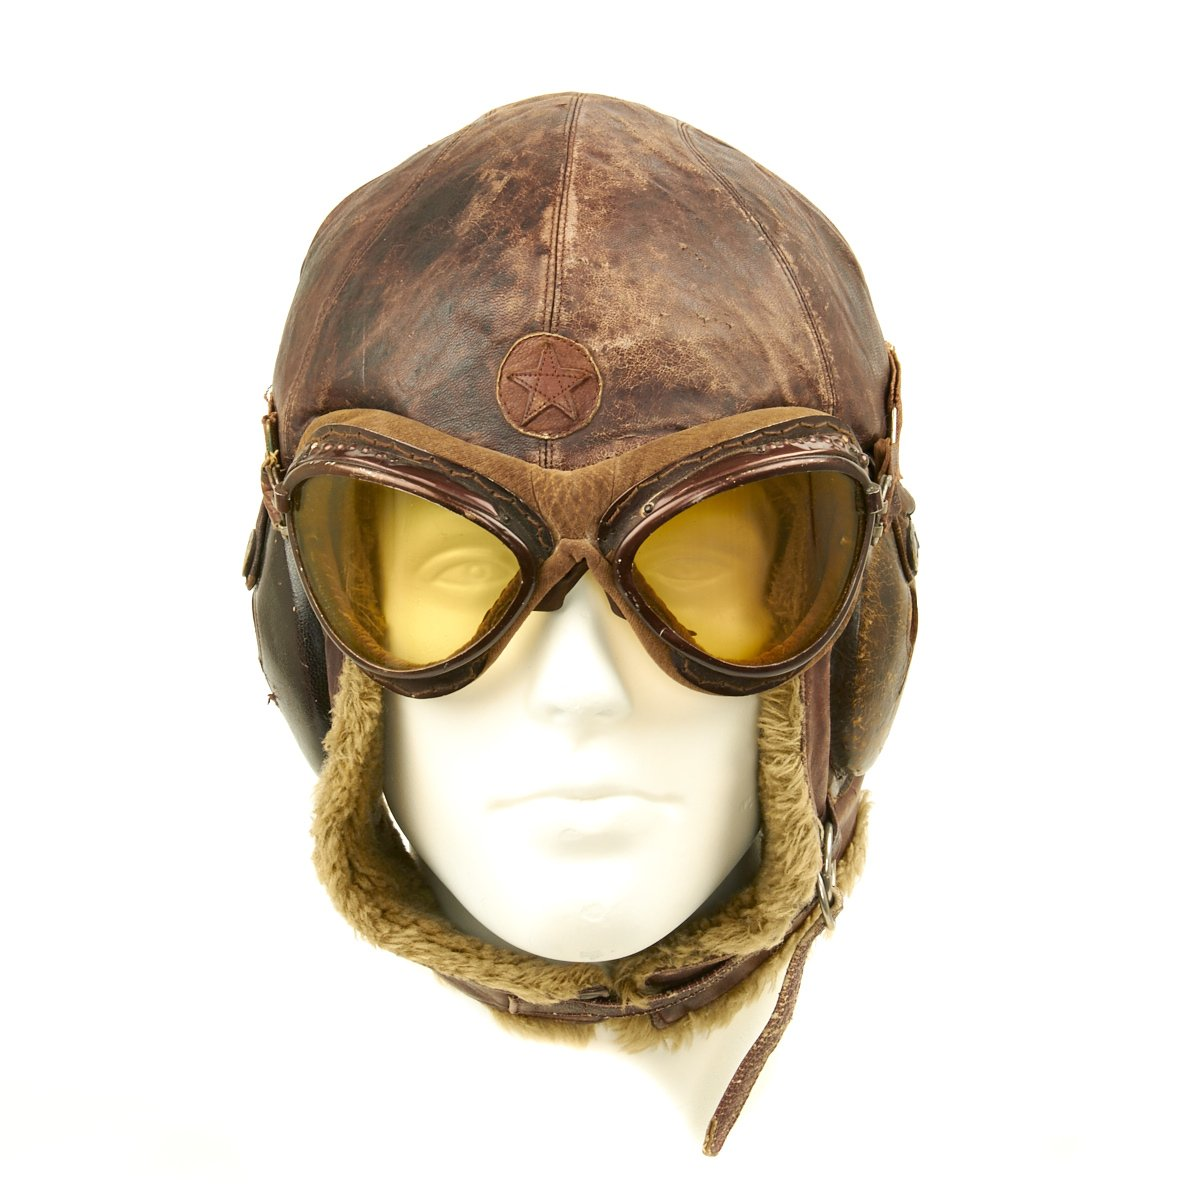 d7dce1e4c2fd Prev · Original Japanese WWII Winter Flying Helmet with Pilot Goggles. Tap  to expand